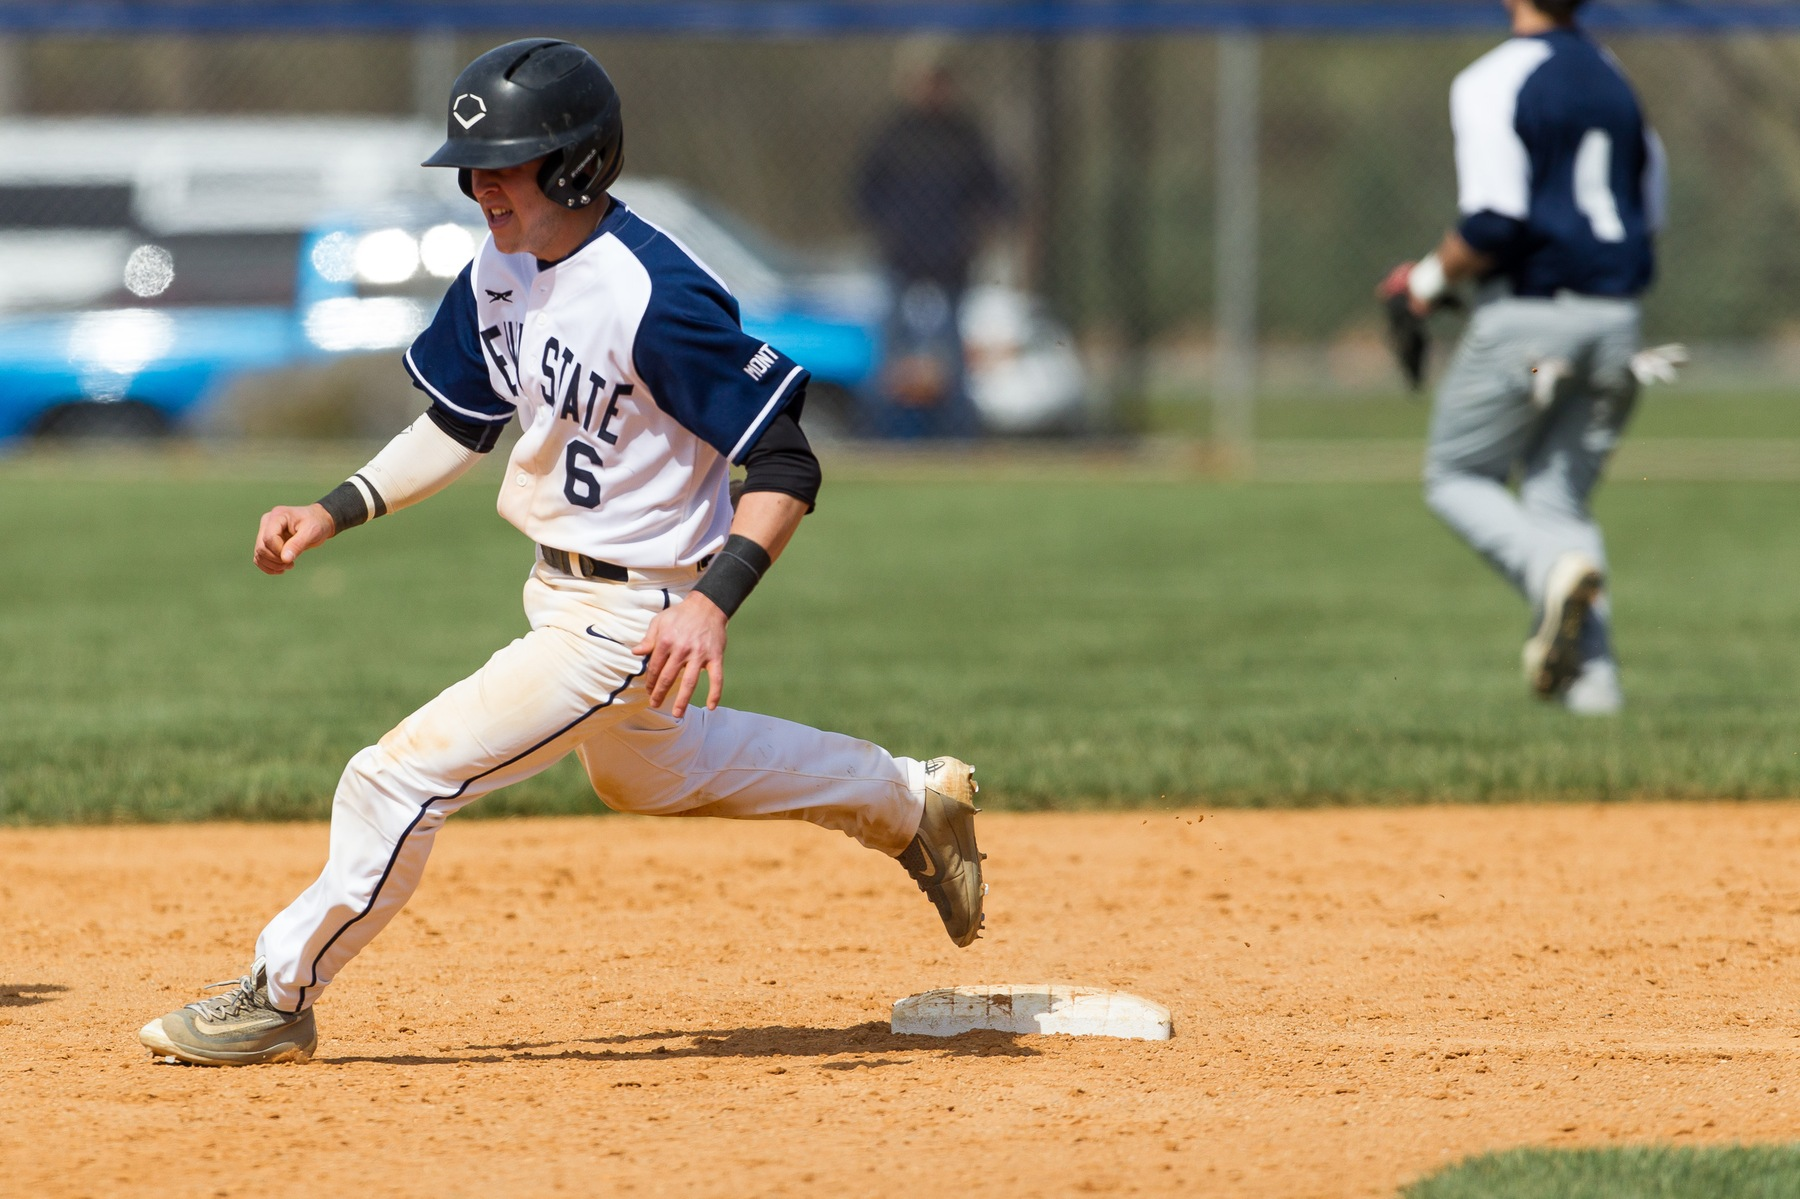 PSU Mont Alto Baseball Wins Extra Inning Thriller to Advance in the PSUAC Tournament